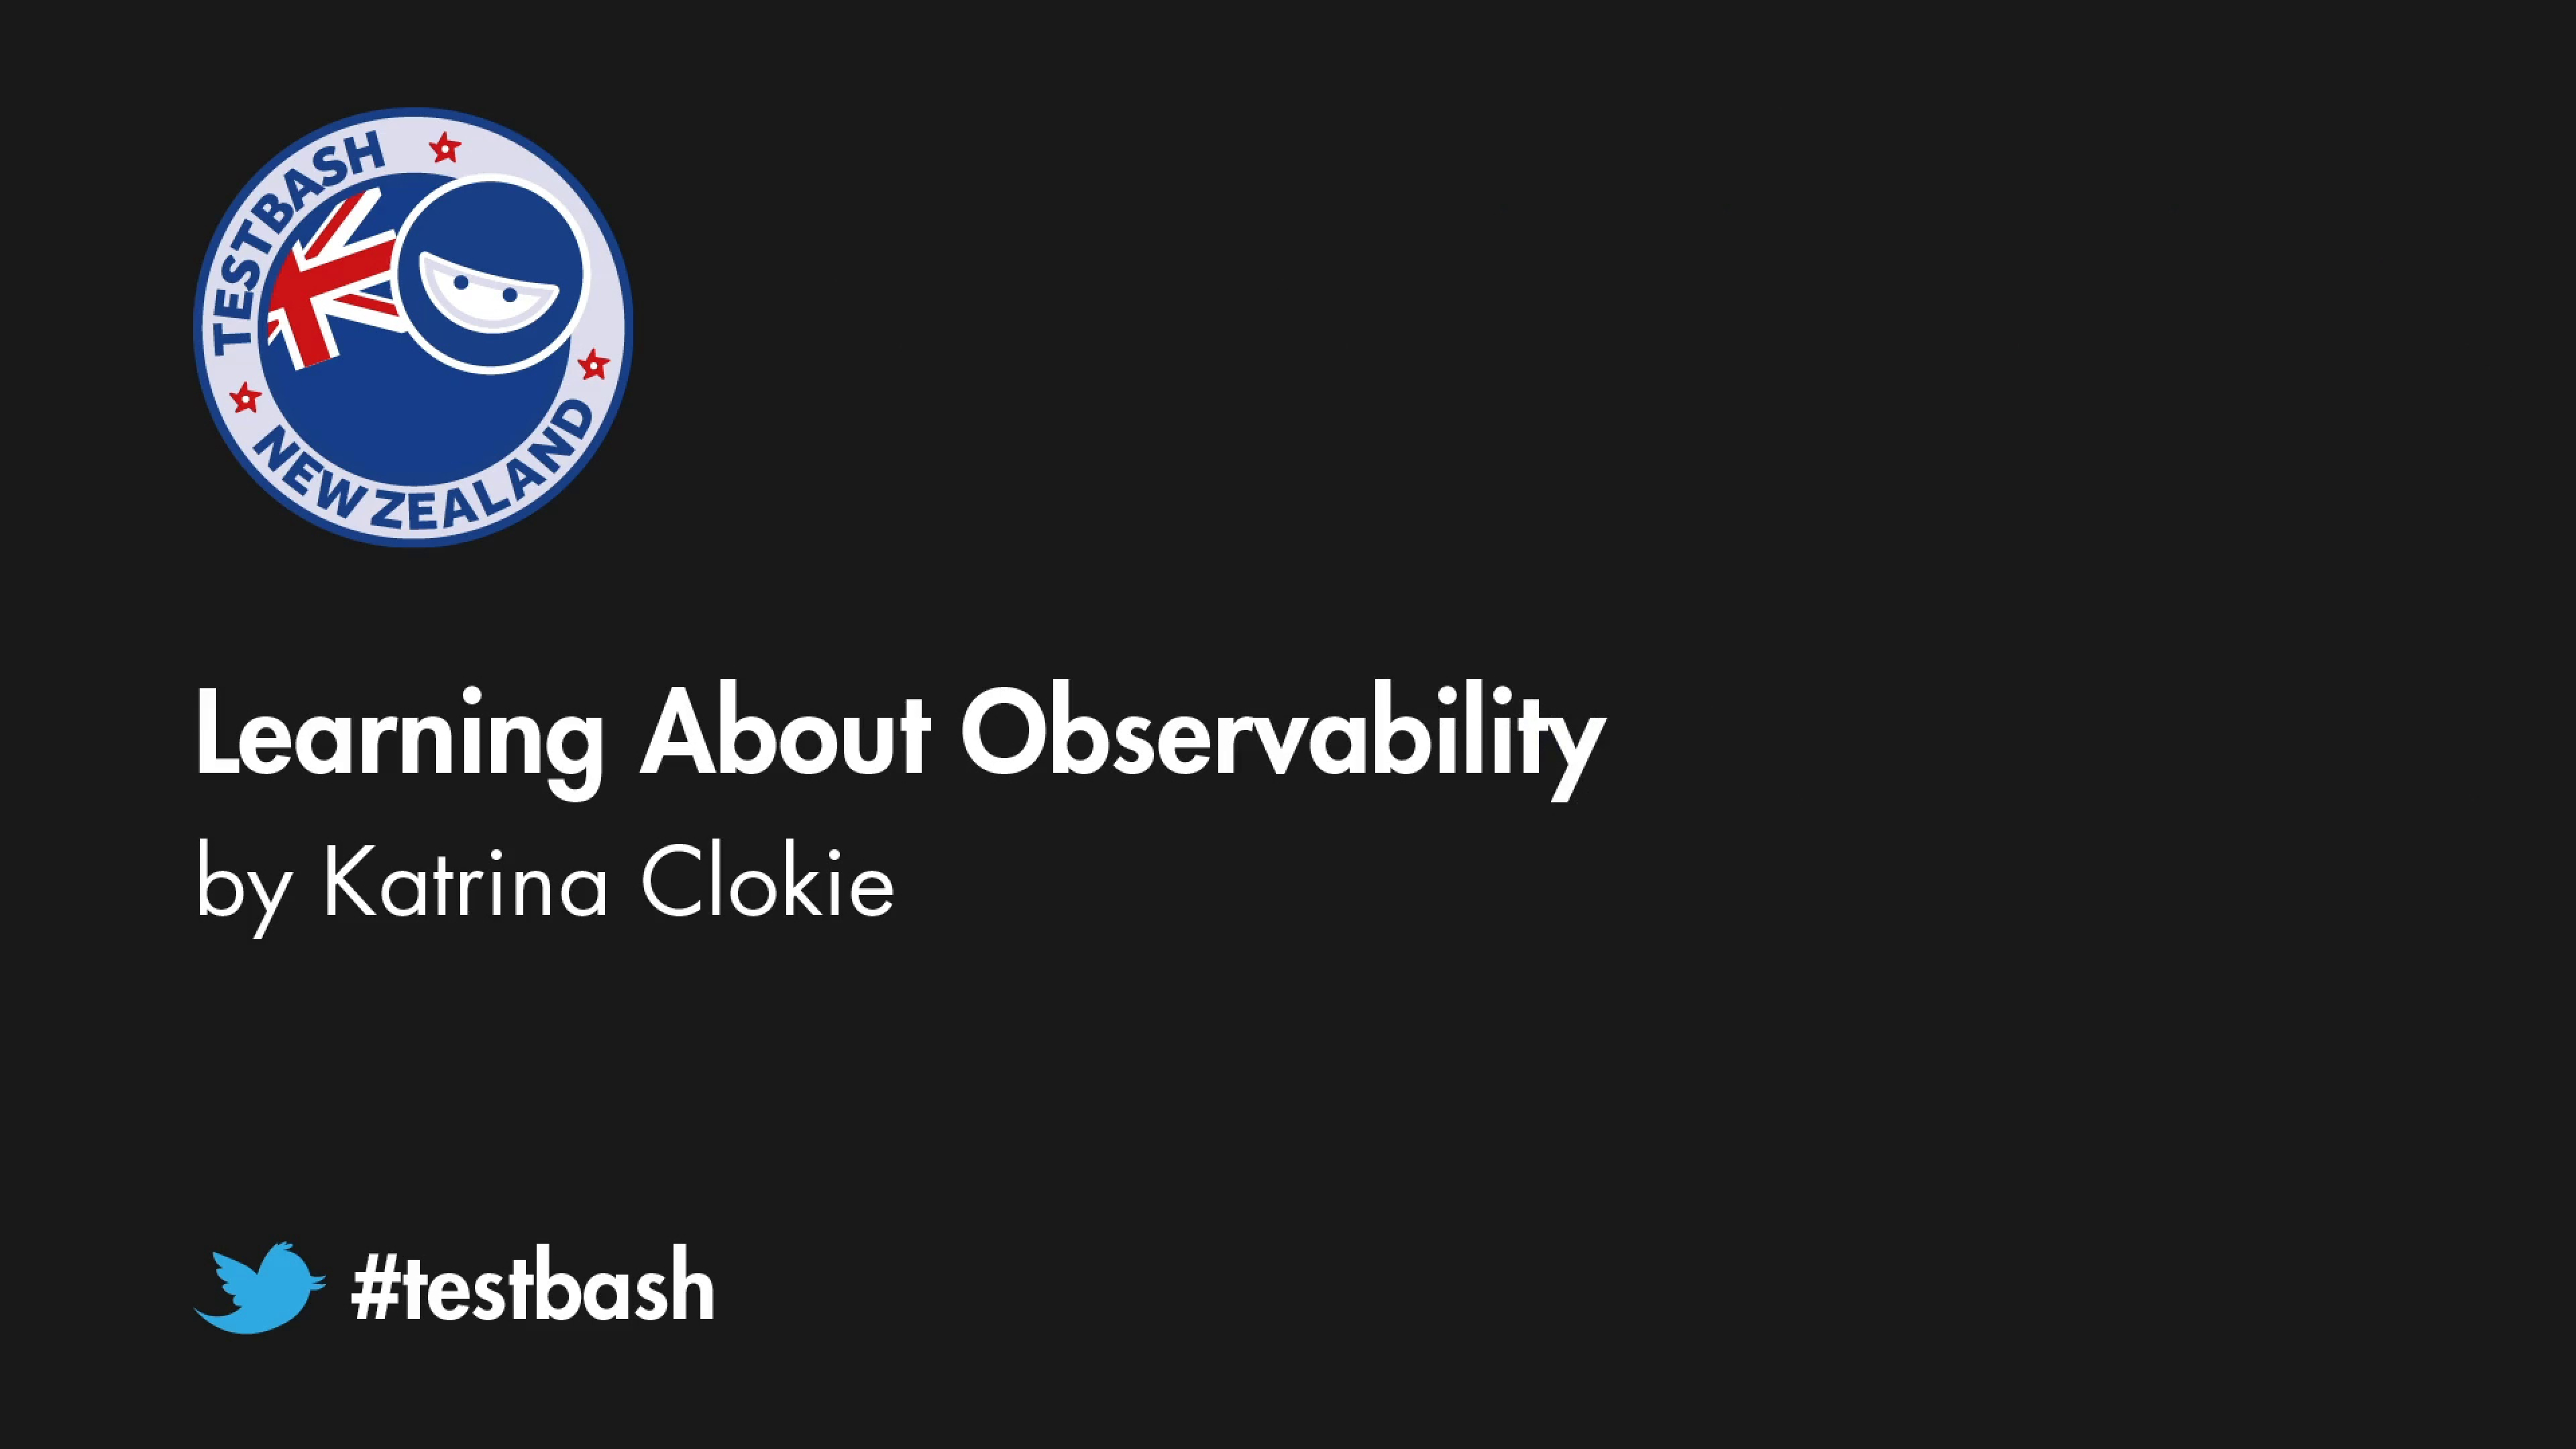 Learning About Observability - Katrina Clokie